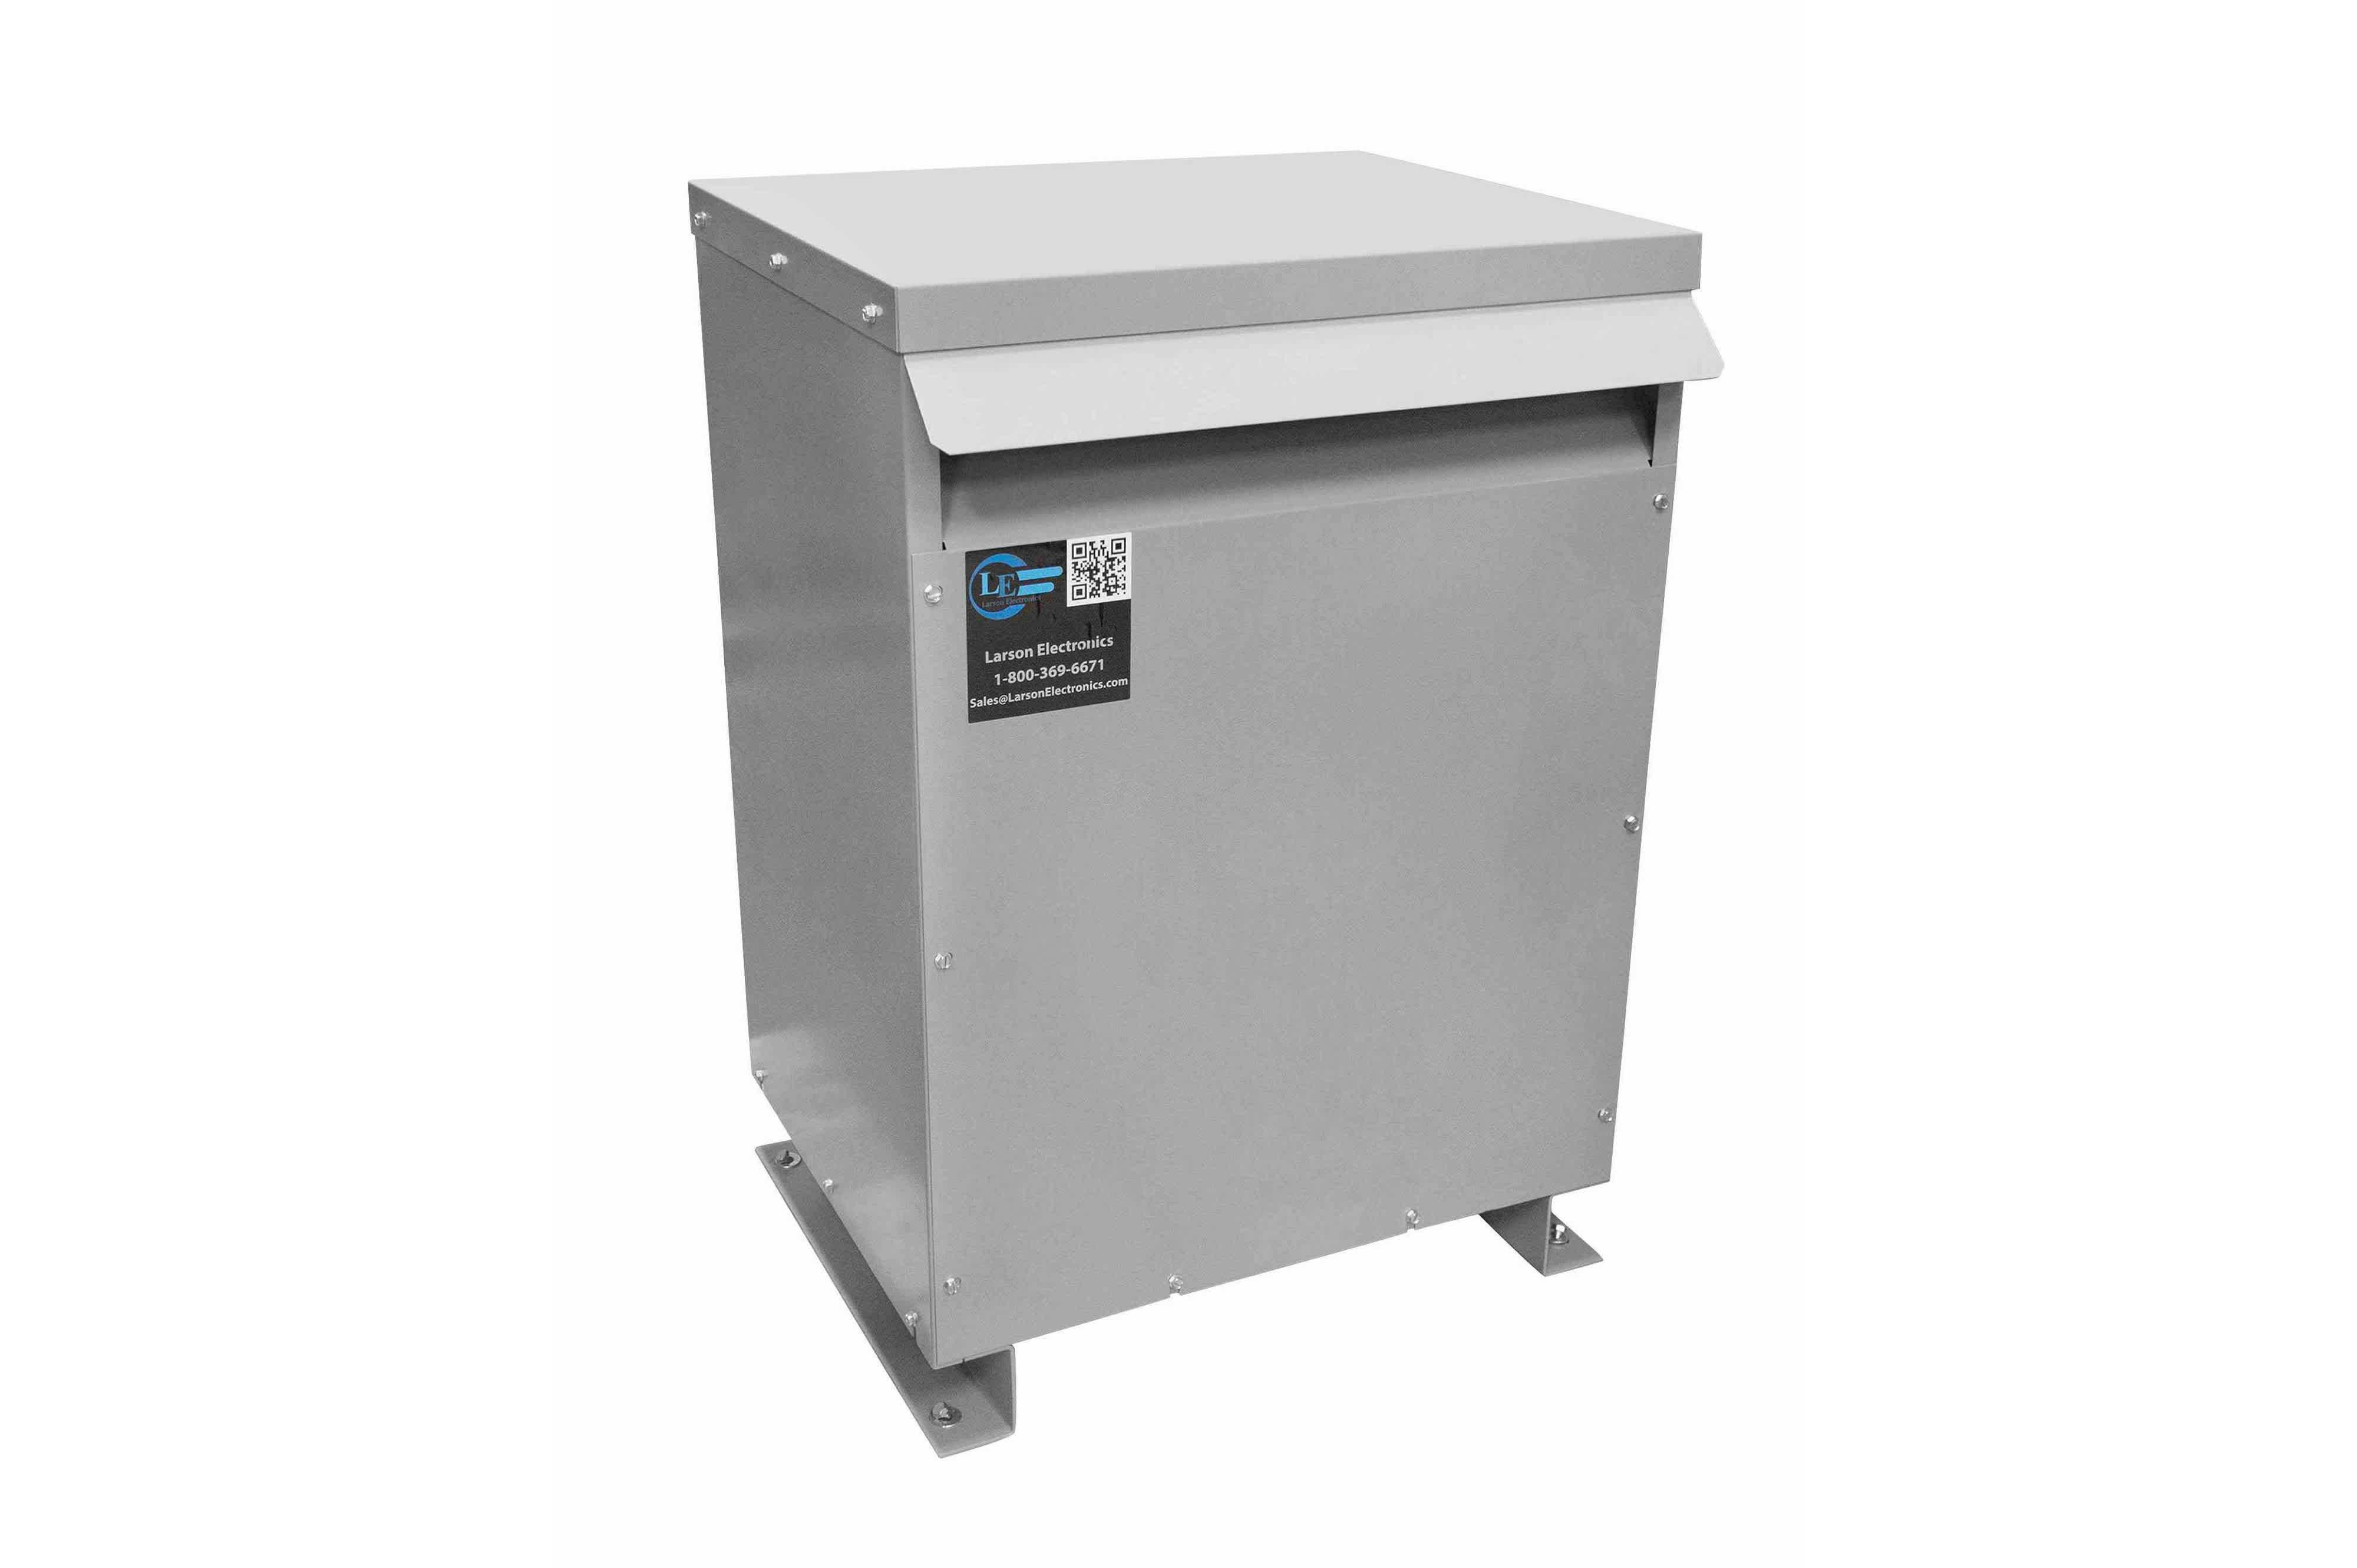 400 kVA 3PH Isolation Transformer, 480V Wye Primary, 415Y/240 Wye-N Secondary, N3R, Ventilated, 60 Hz